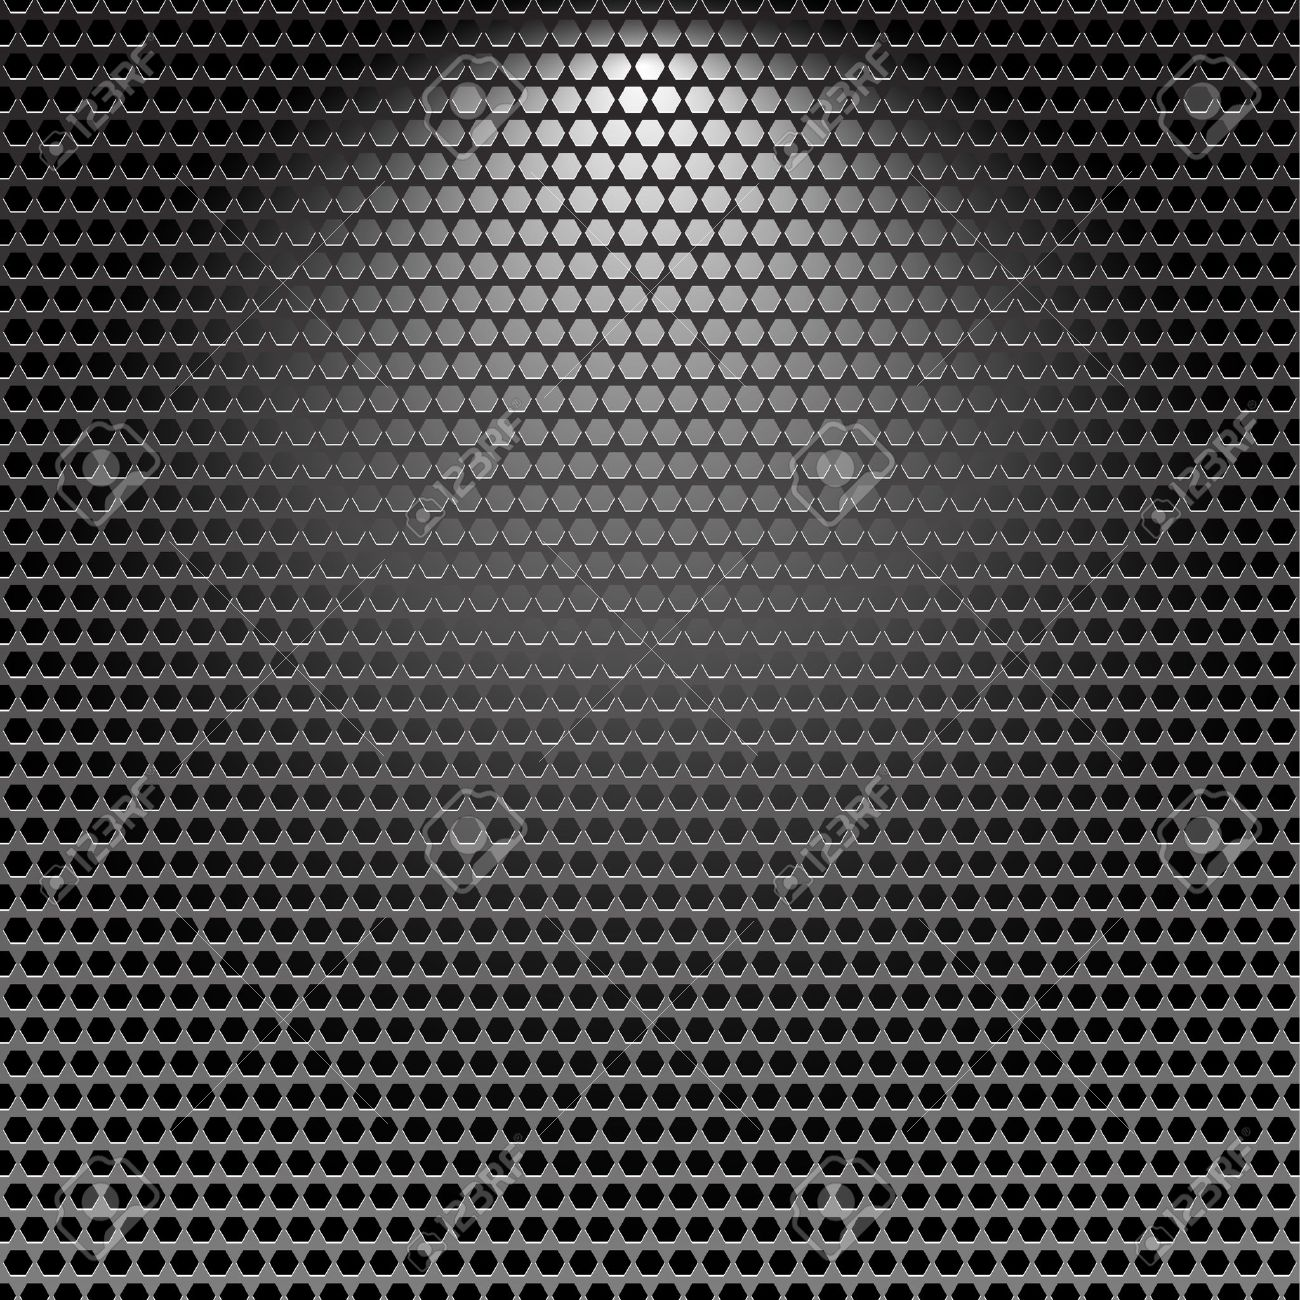 Dark stainless grille metal texture background with light effect Stock Vector - 7617544